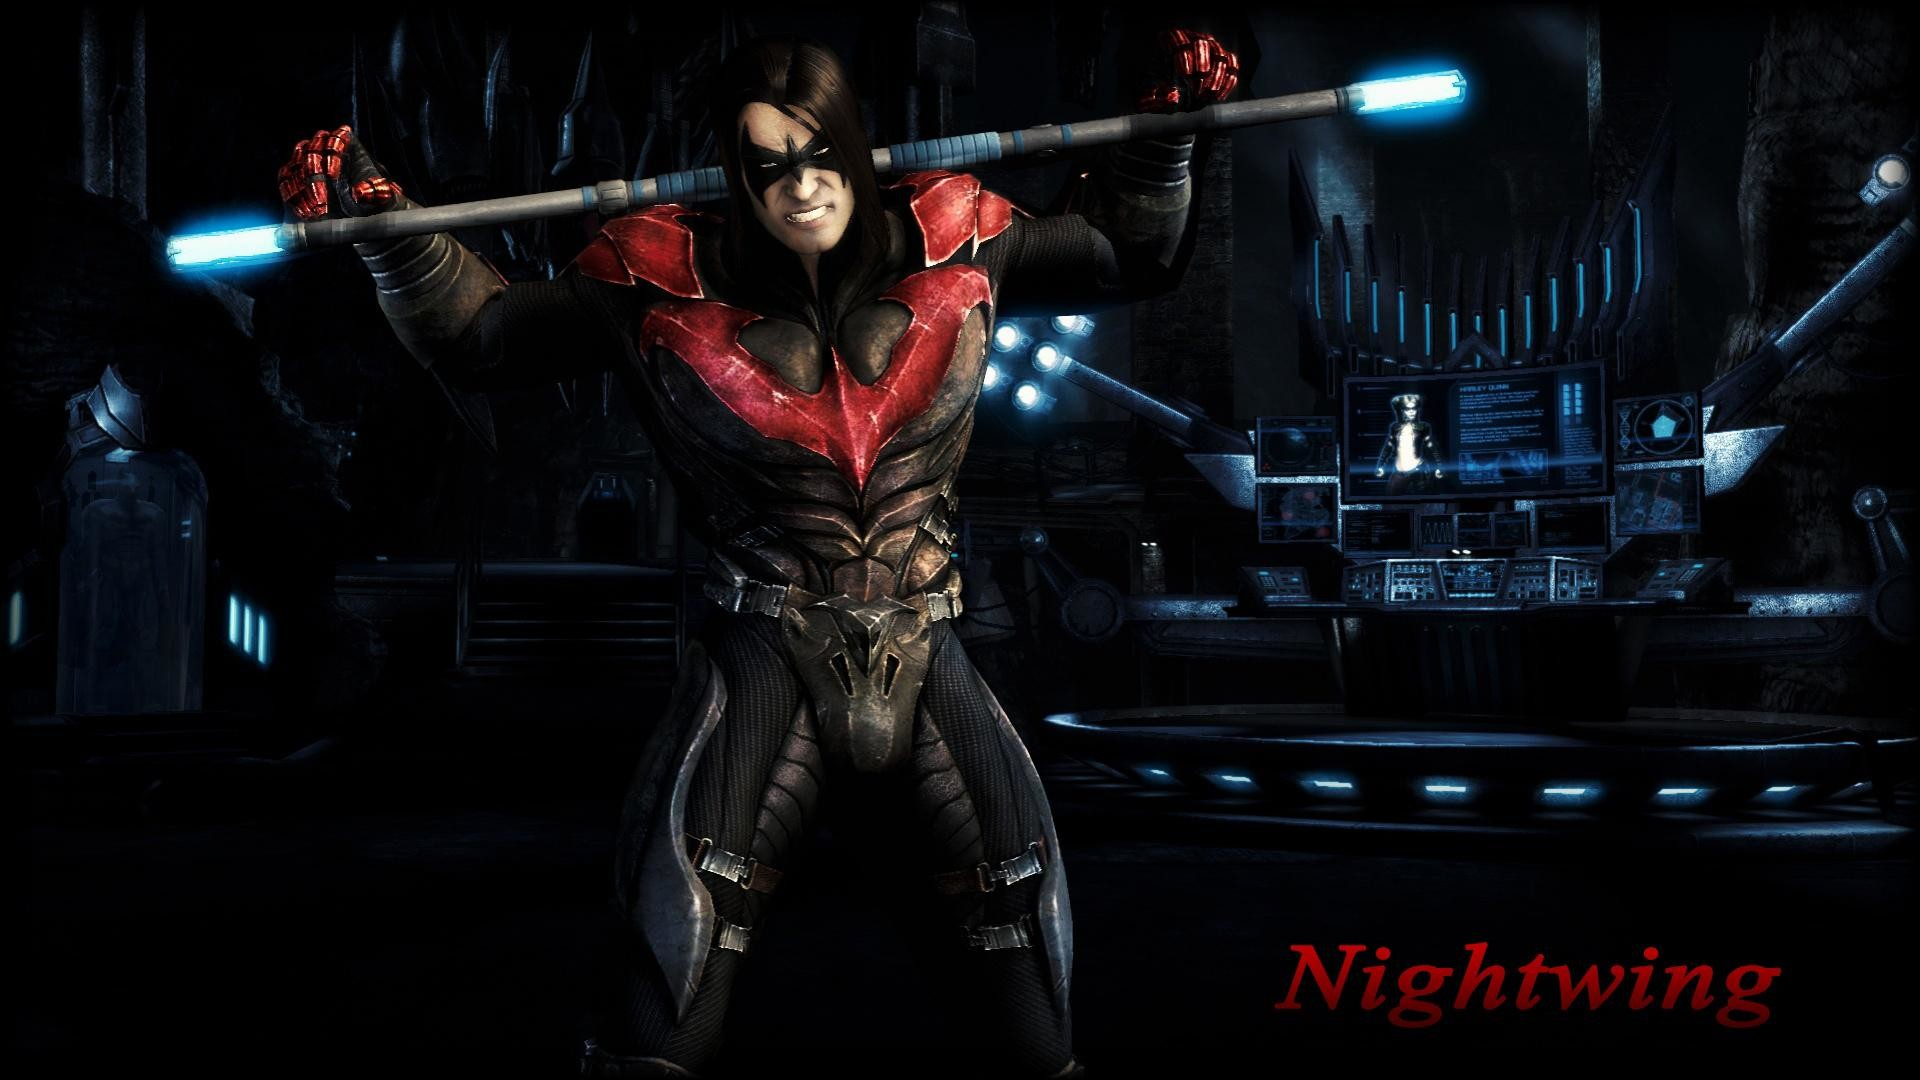 1920x1080 wallpaper.wiki-Nightwing-Wallpapers-HD-Free-Download-PIC-